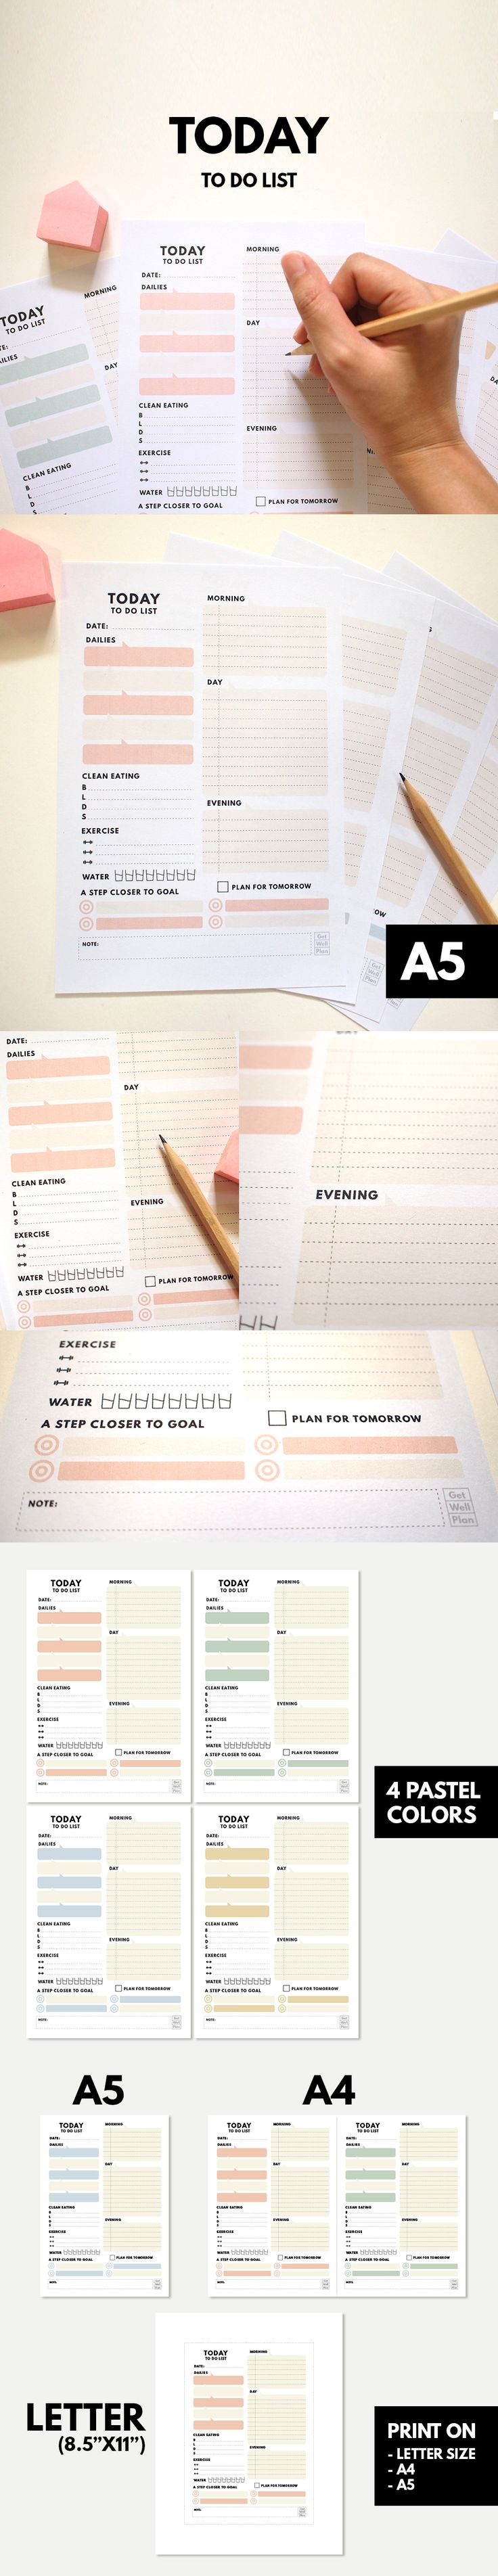 "Today - To do list | A5 Printable ▹ for Daily planner  Have you ever overwhelmed by thing to do in each day. Organize it! by ""Today"" planner & to do list."